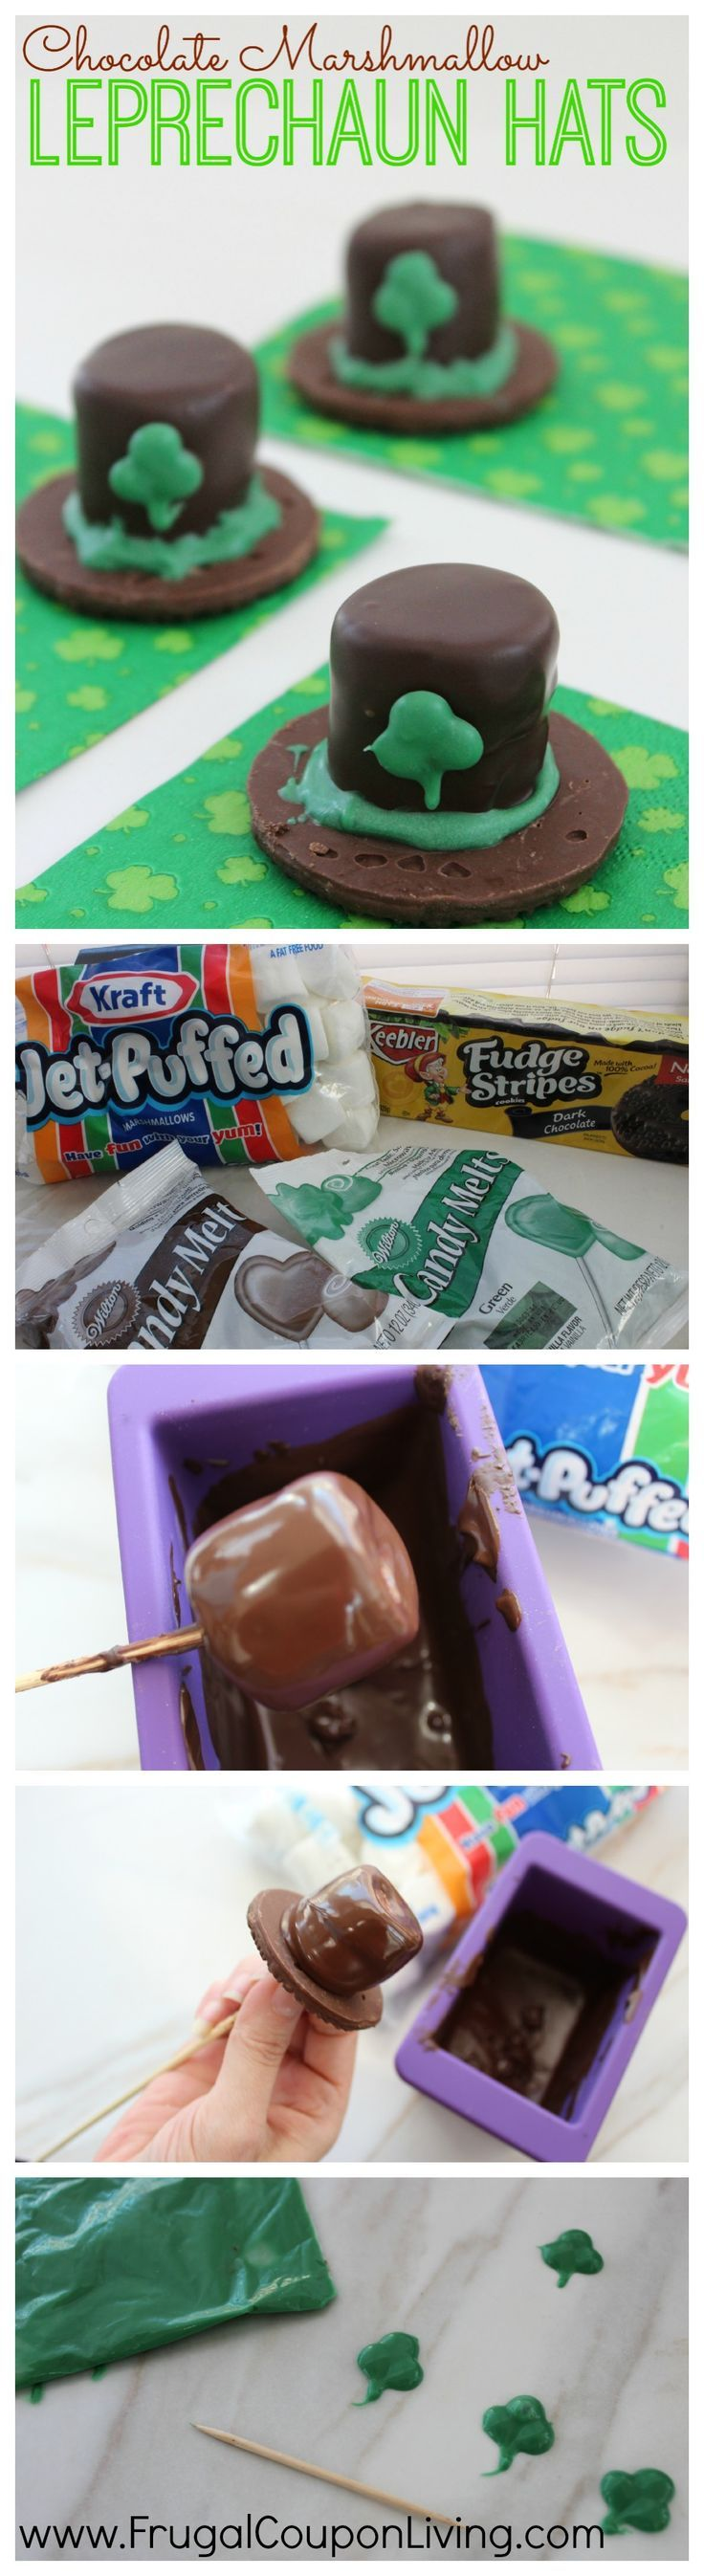 Looking for a cute St. Patrick's Day Treat for these kids? These Chocolate Marshmallow Leprechaun Hats on Frugal Coupon Living are the most precious St Patrick's Day Recipe. This and more Kids Food Crafts for St Patty's Day.